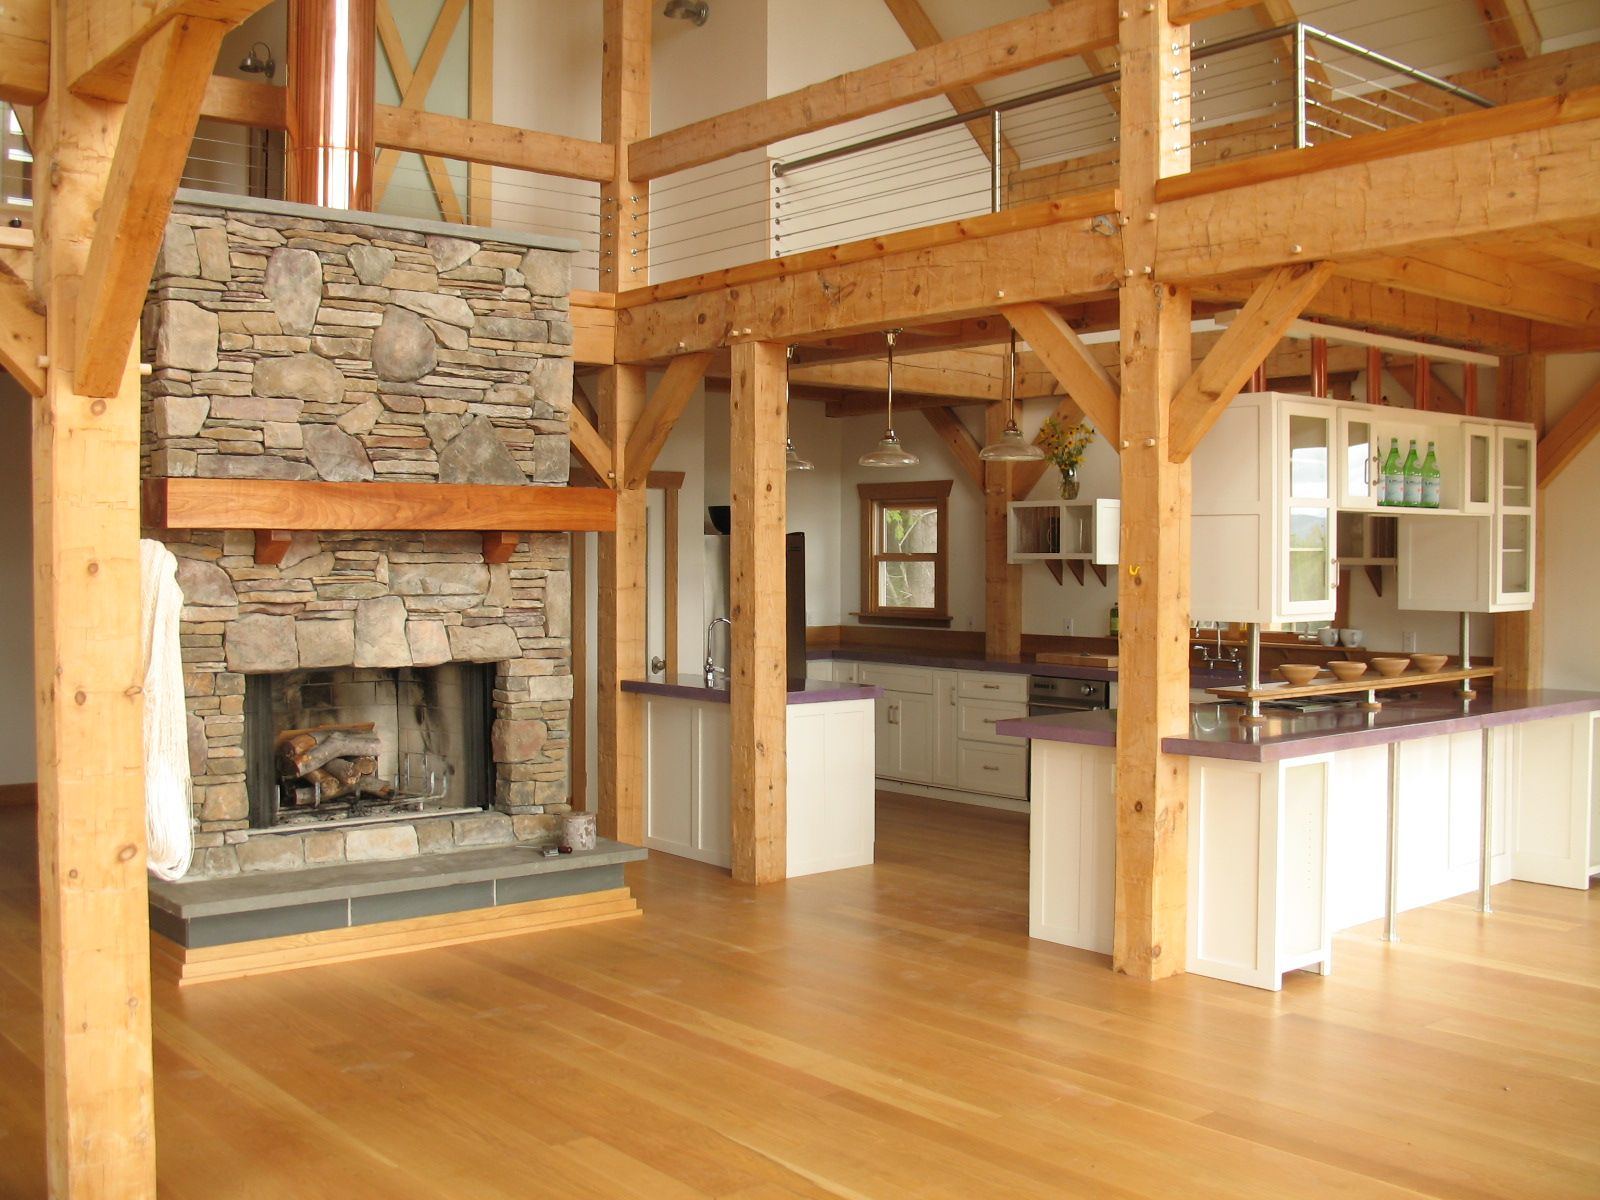 25 Best Ideas About Barn House Interiors On Pinterest Barn. 1000 ...